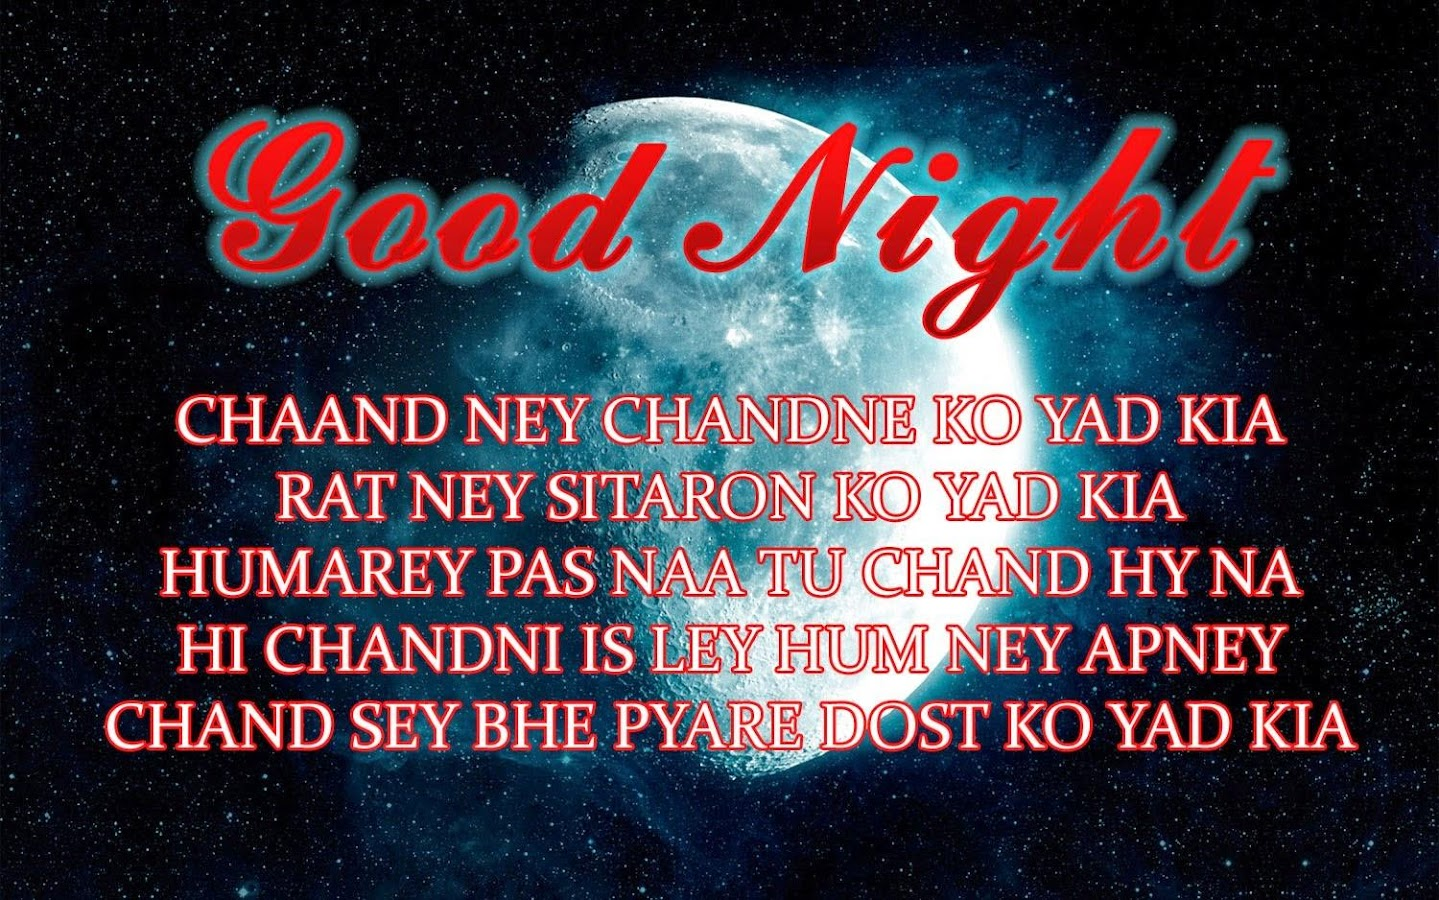 Wallpaper download english - Good Night Shayari Screenshot